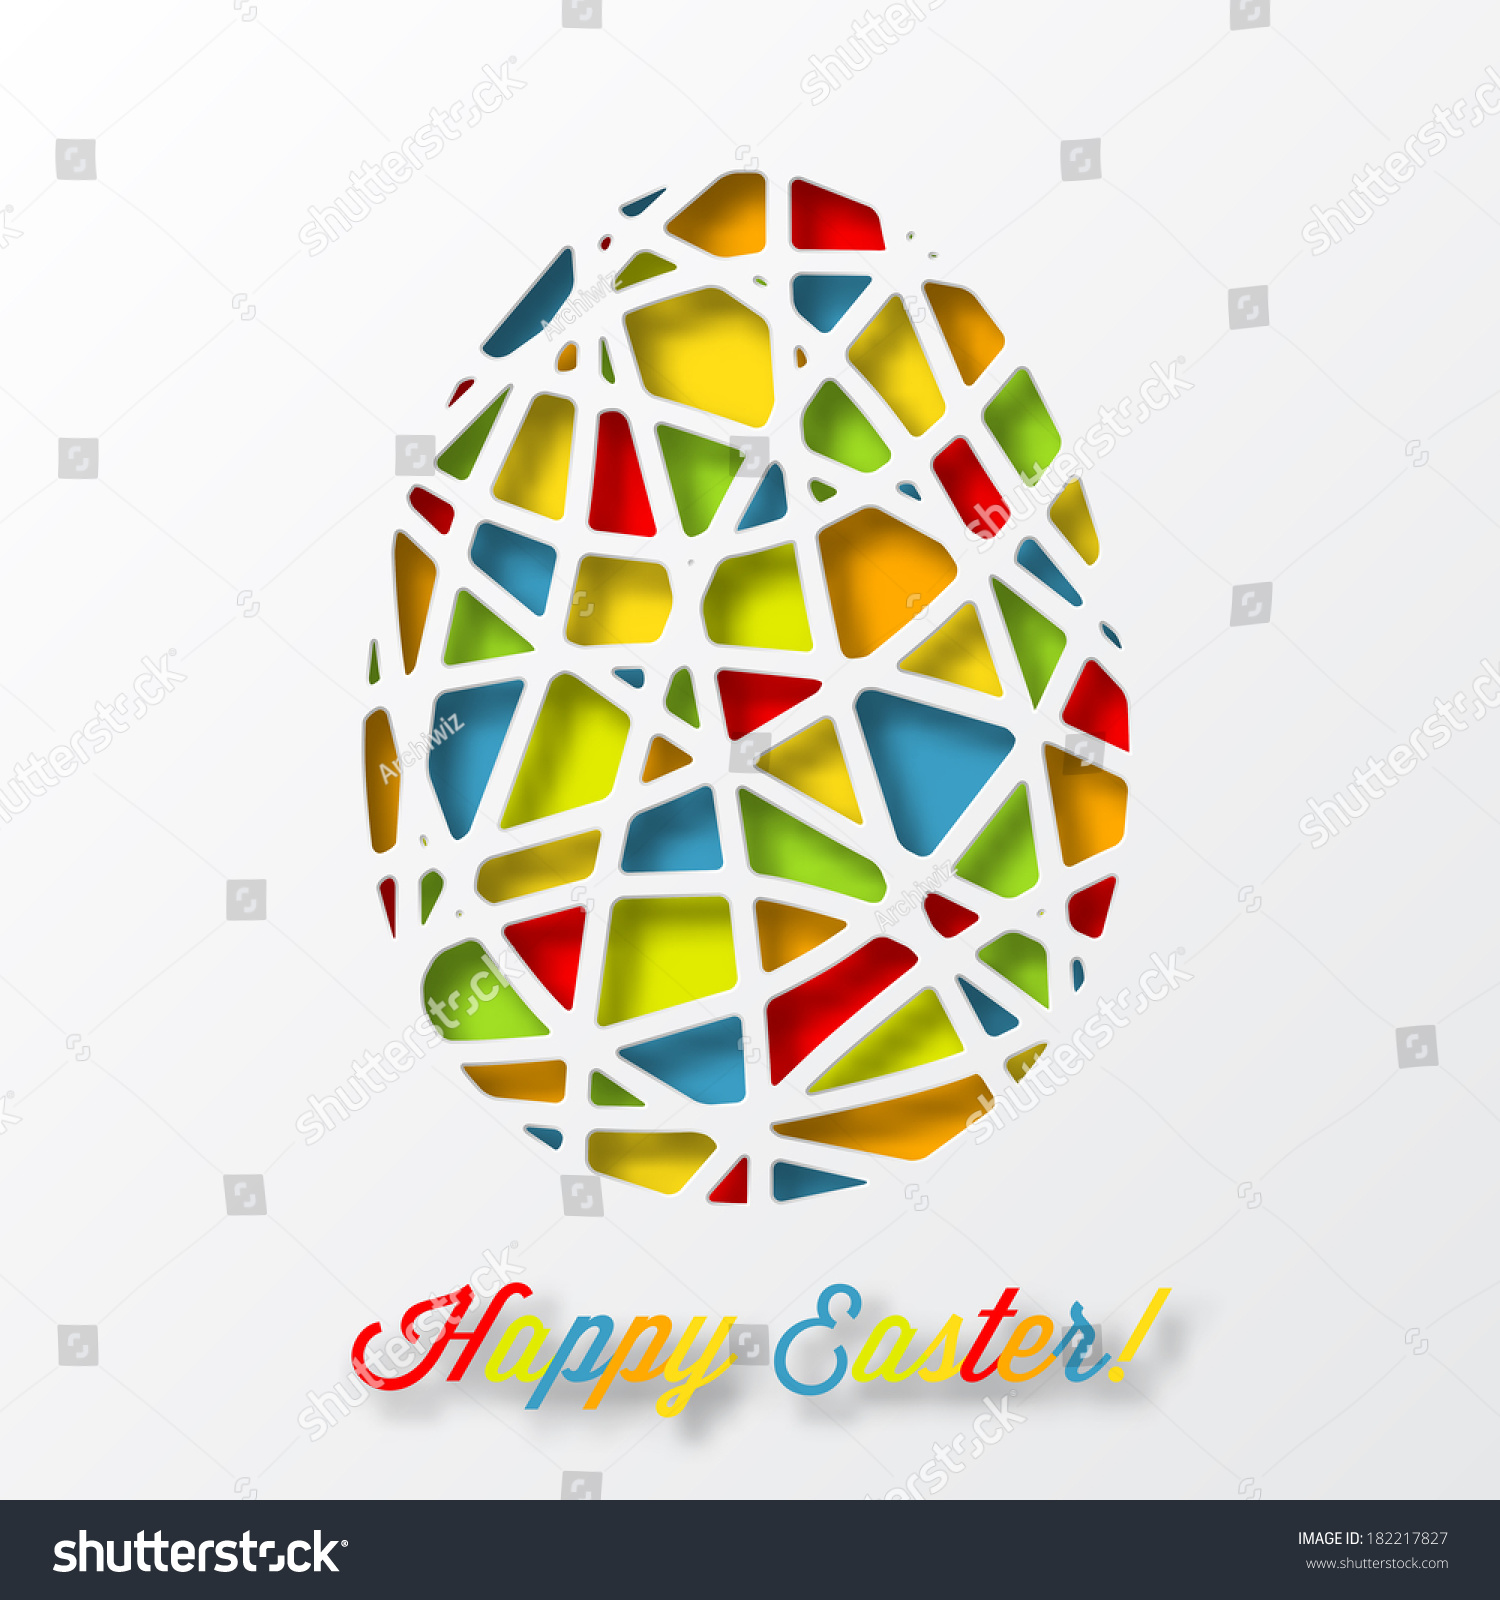 Happy Easter Card Colorful Decorated Egg Vector 182217827 – Happy Easter Card